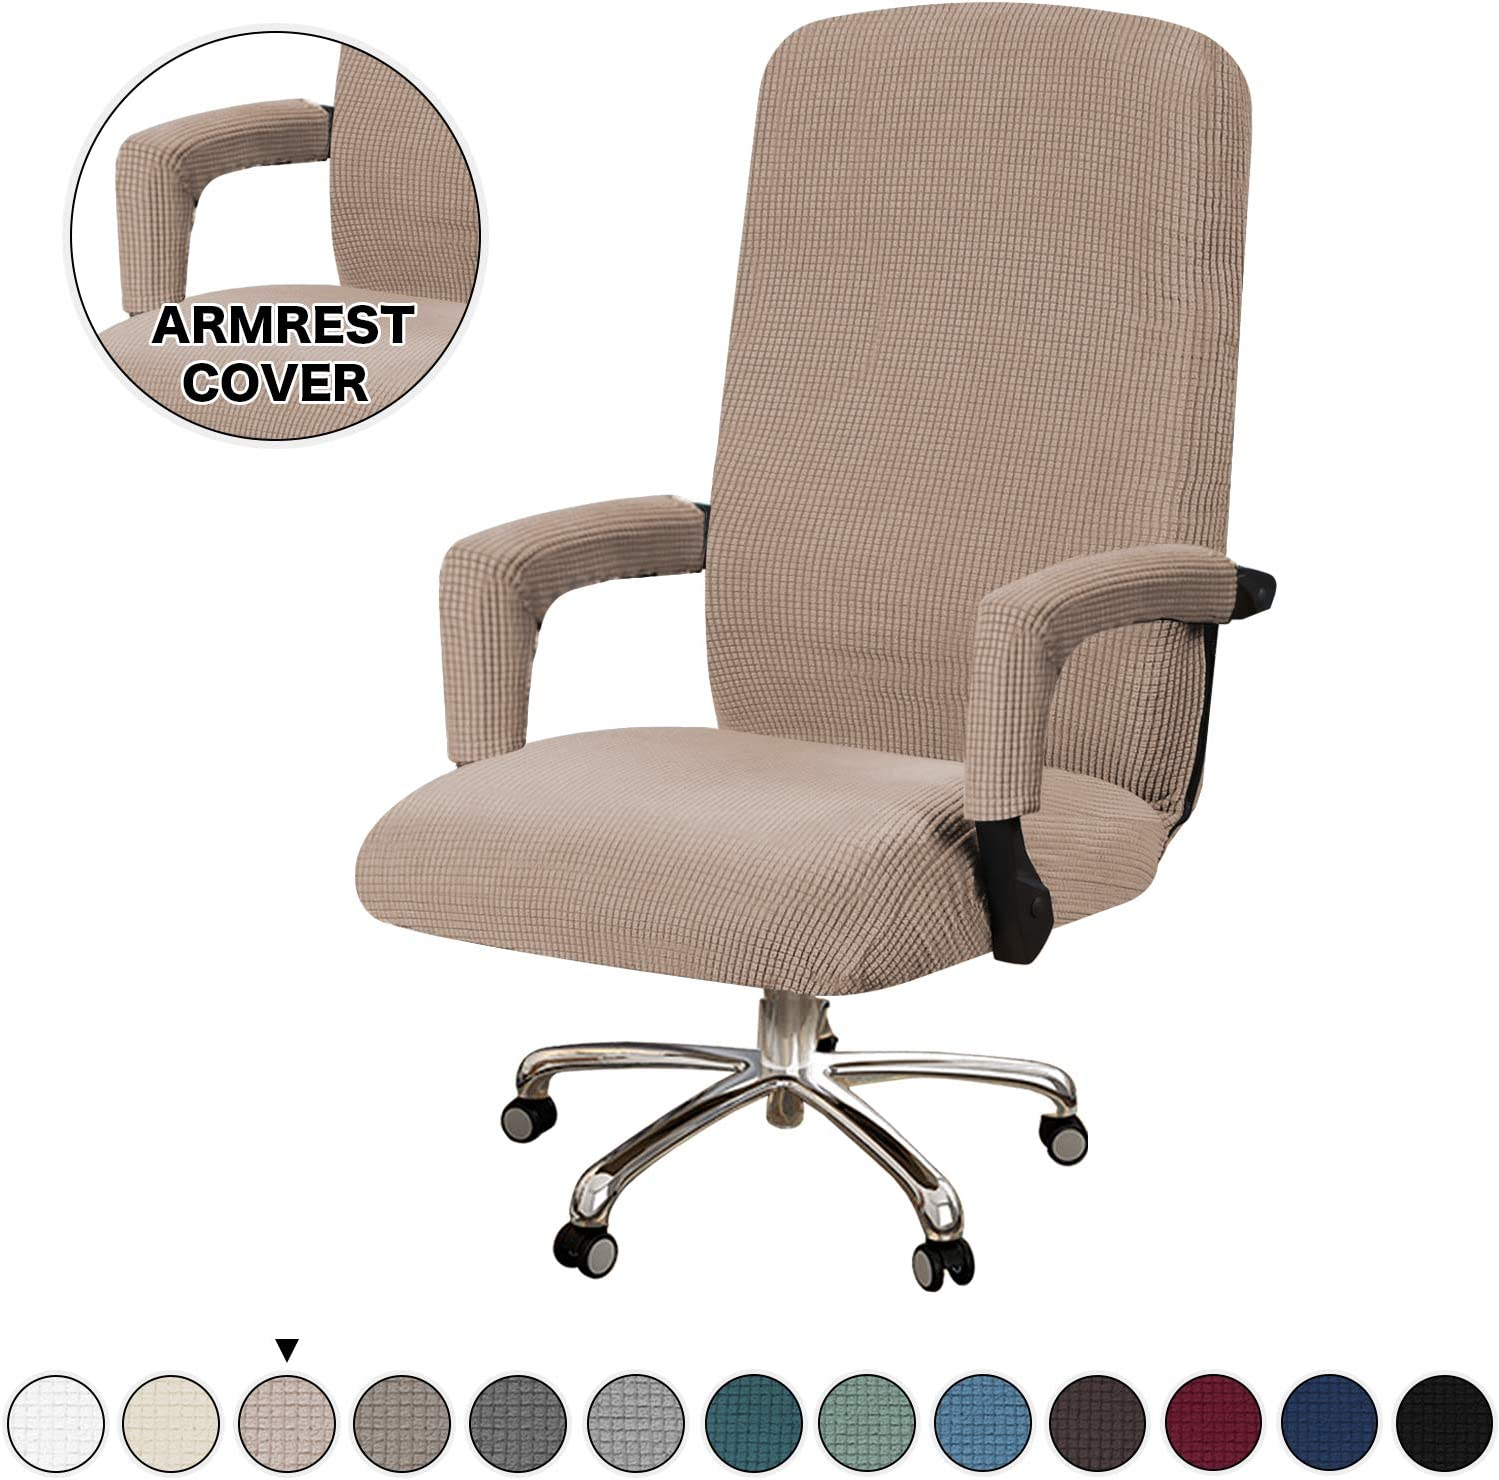 Turquoize Office Chair Cover Extra Large Computer Chair Cover Chair Slipcovers for Universal Rotating Boss Chair with Armrest Cover Swivel Chair Cover for High Back Chair, Large, Khaki